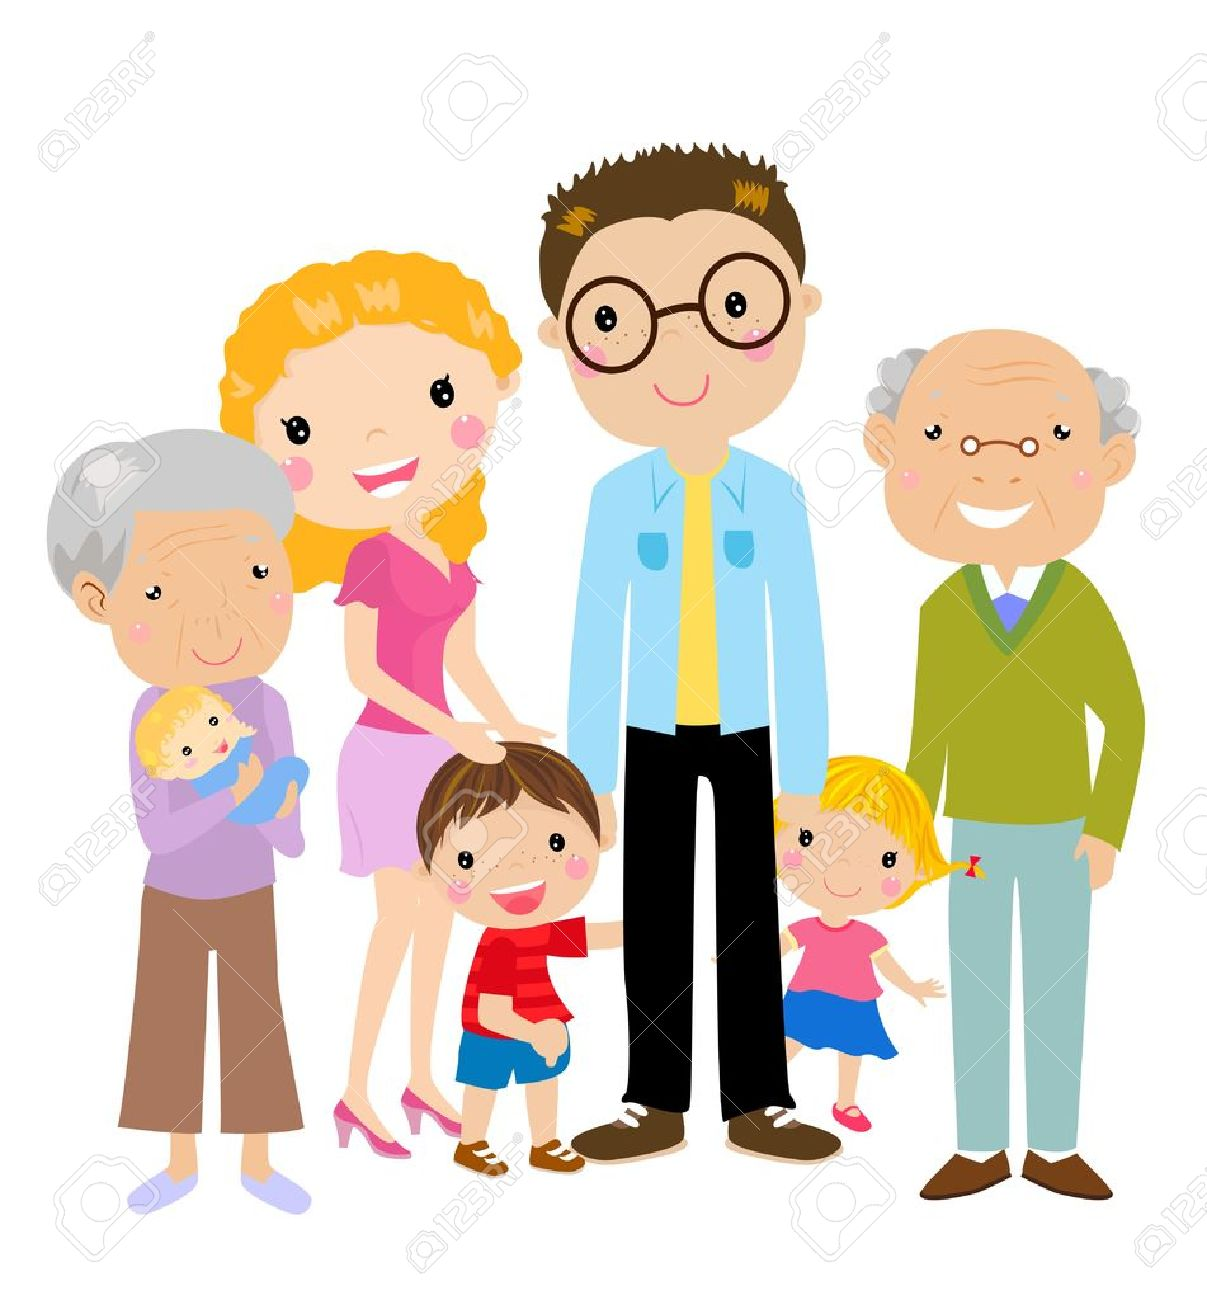 Big Cartoon Family With Parents, Children And Grandparents, Vector.